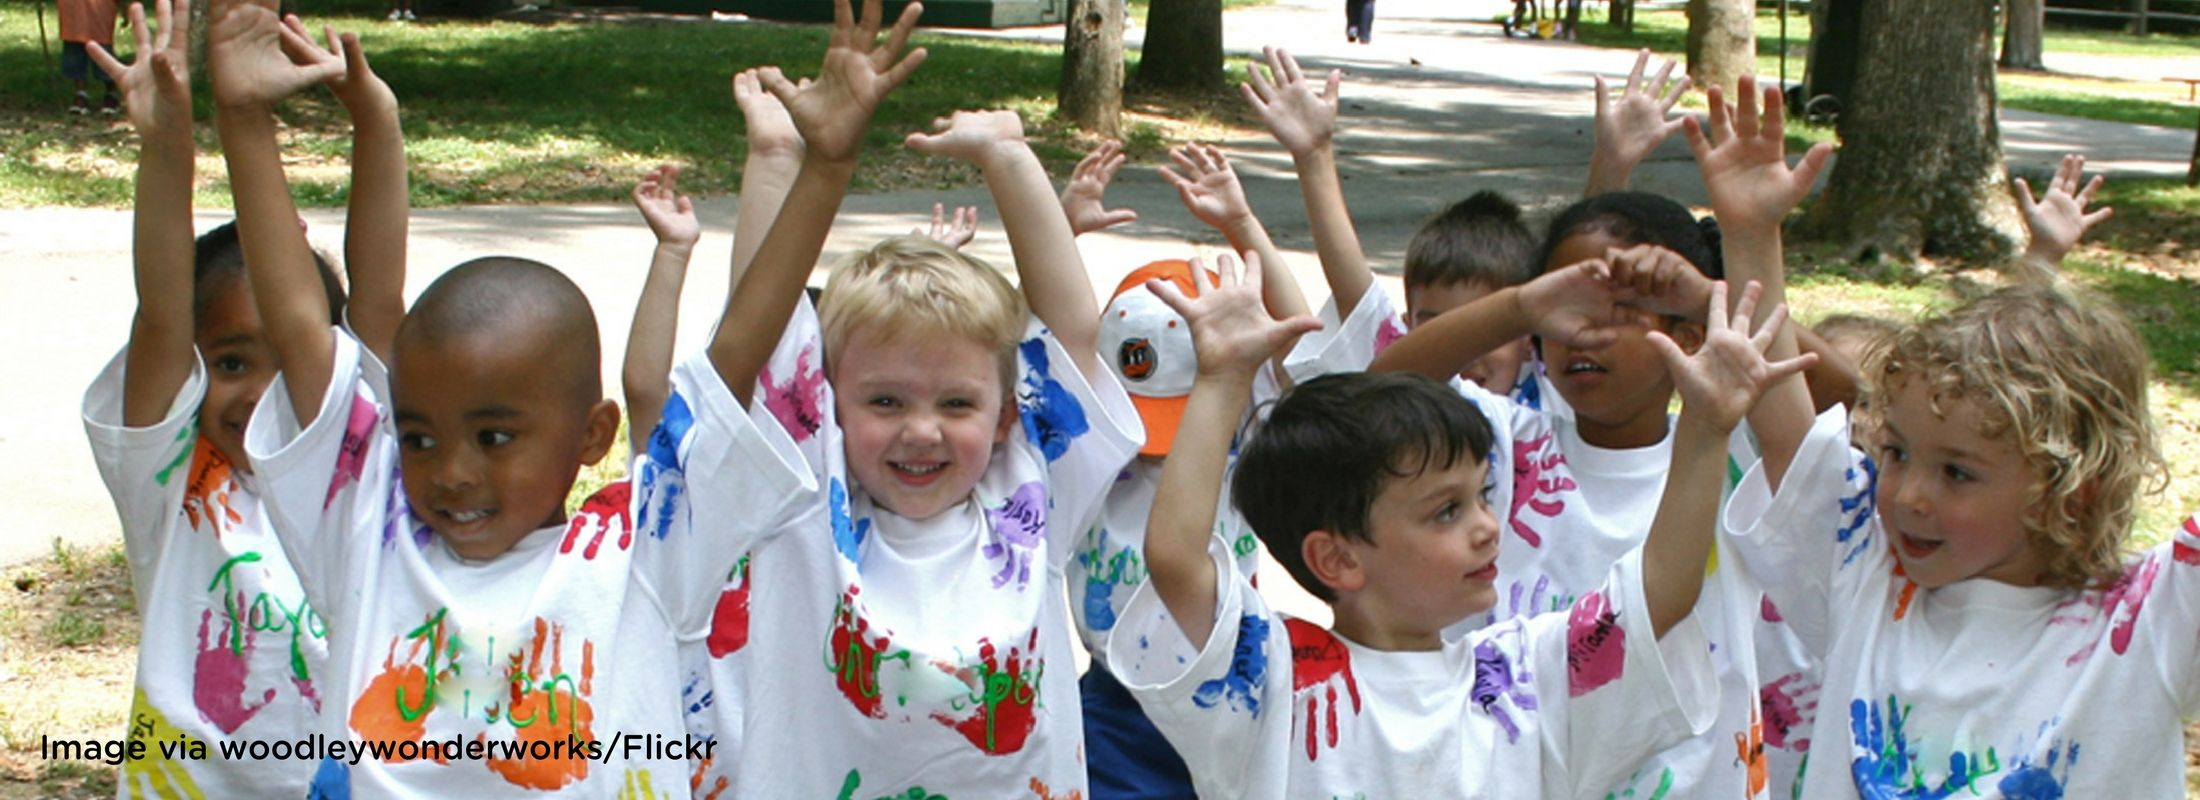 Children wearing handprint t-shirts and raising their arms high